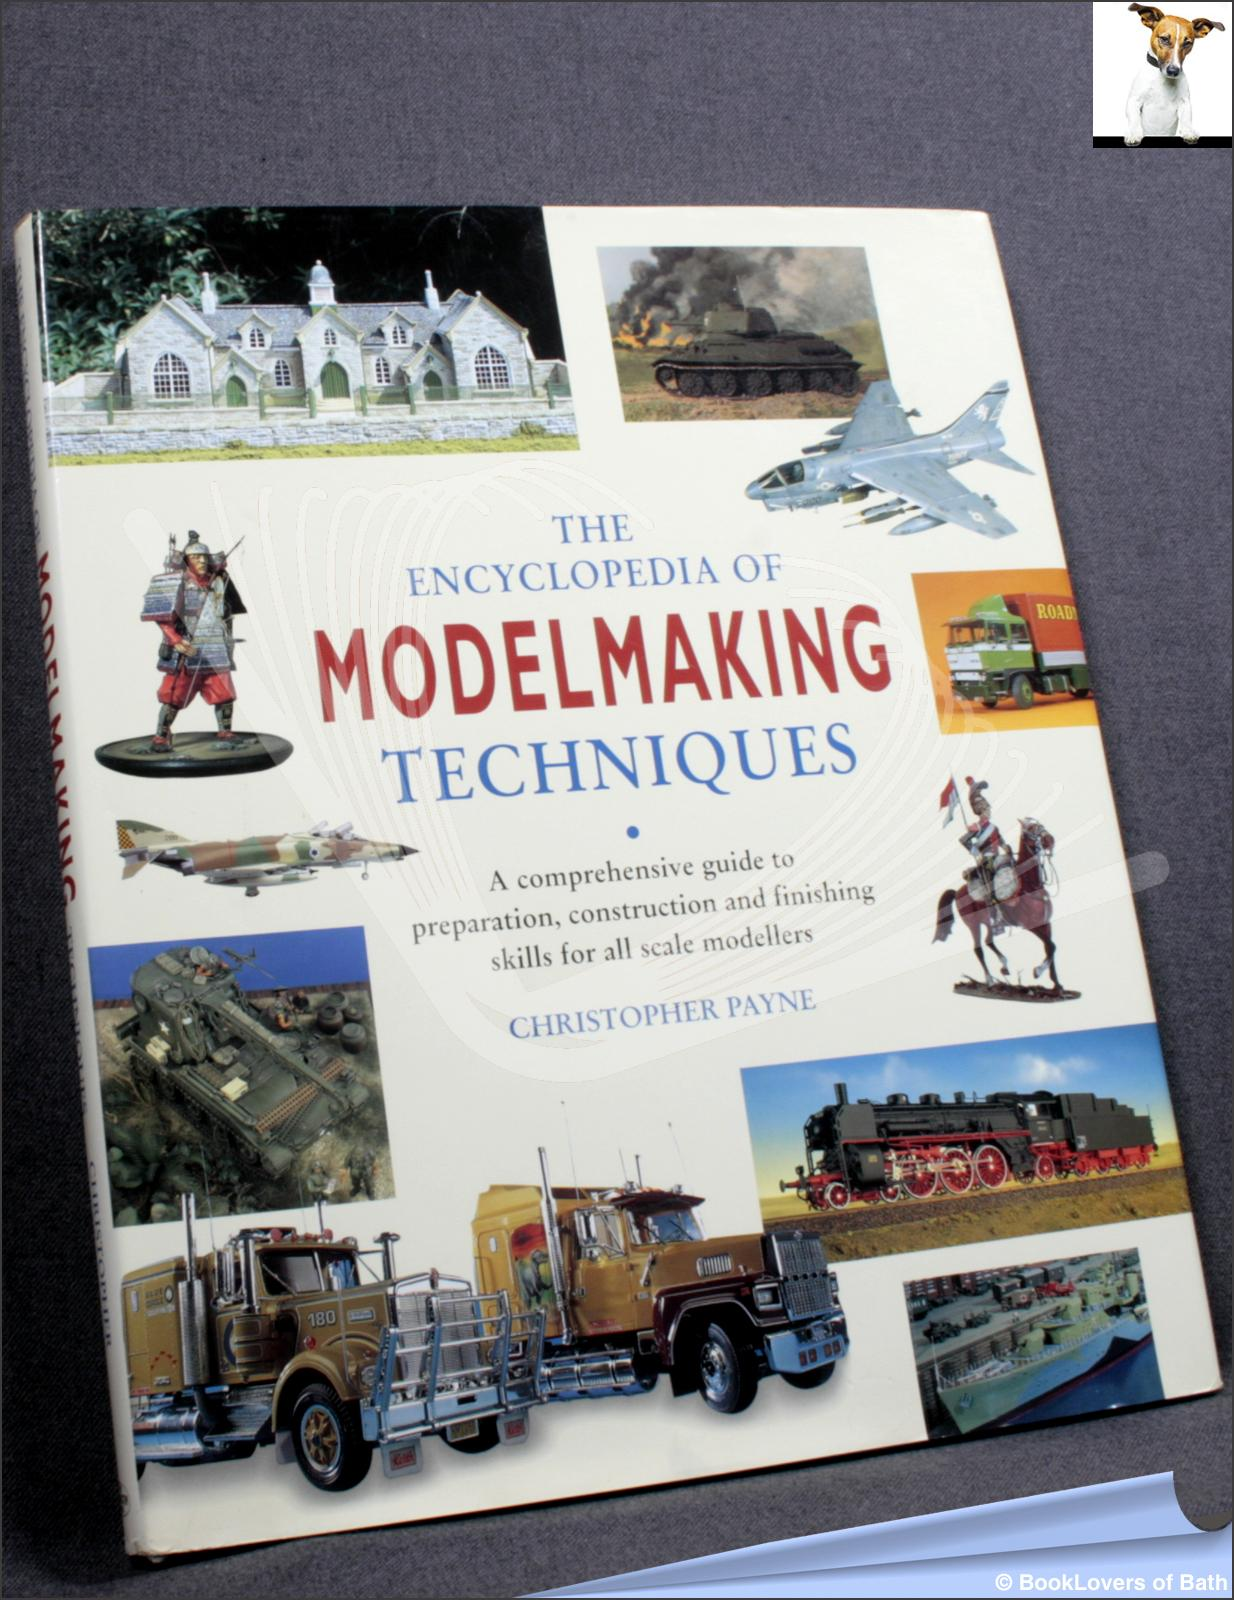 The Encyclopedia of Modelmaking Techniques - Christopher Payne